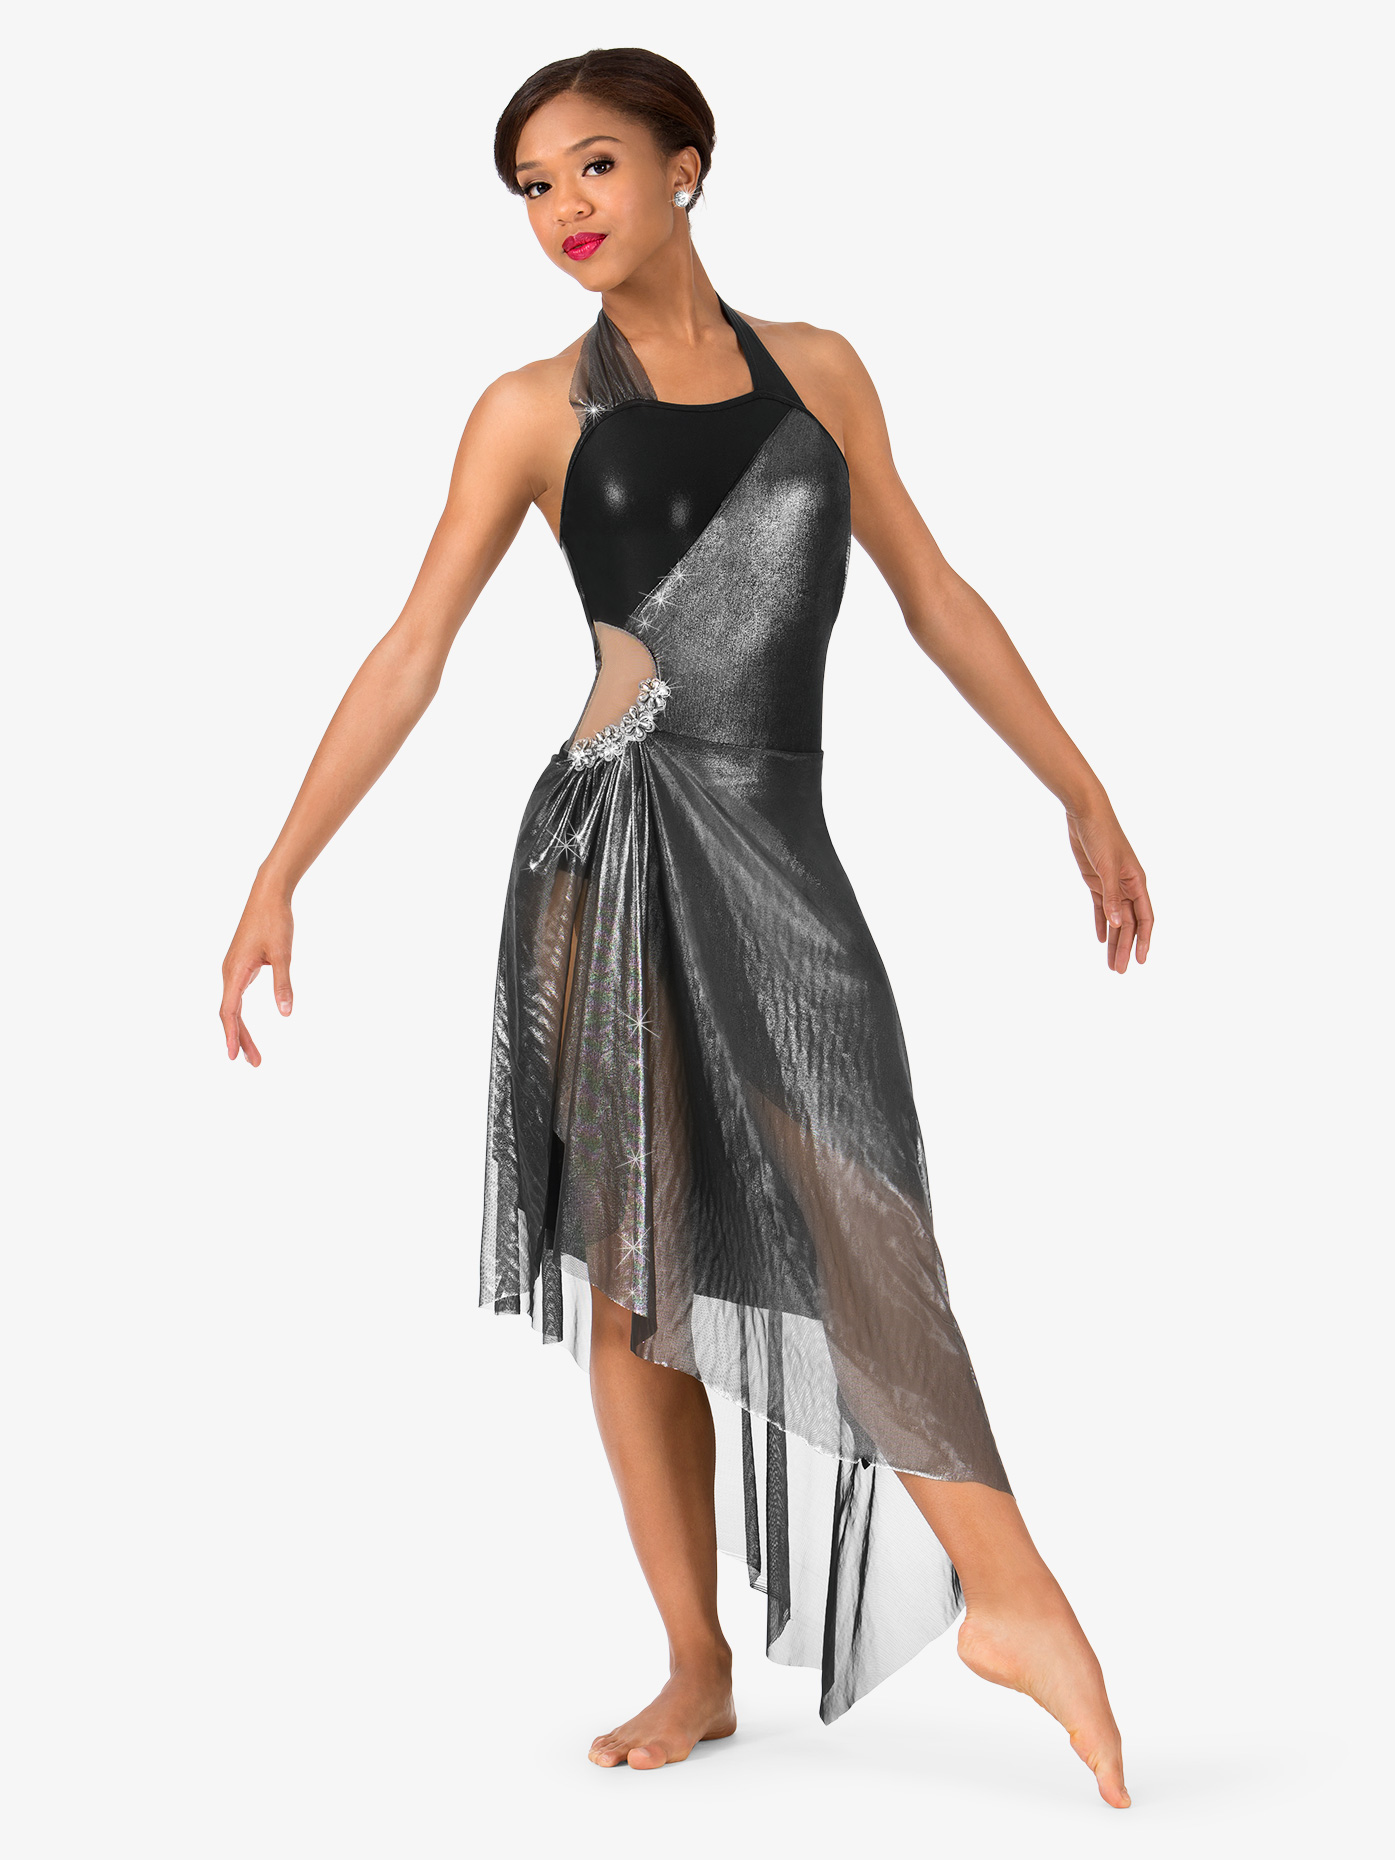 Elisse by Double Platinum Womens Metallic Asymmetrical Halter Performance Dress N7477